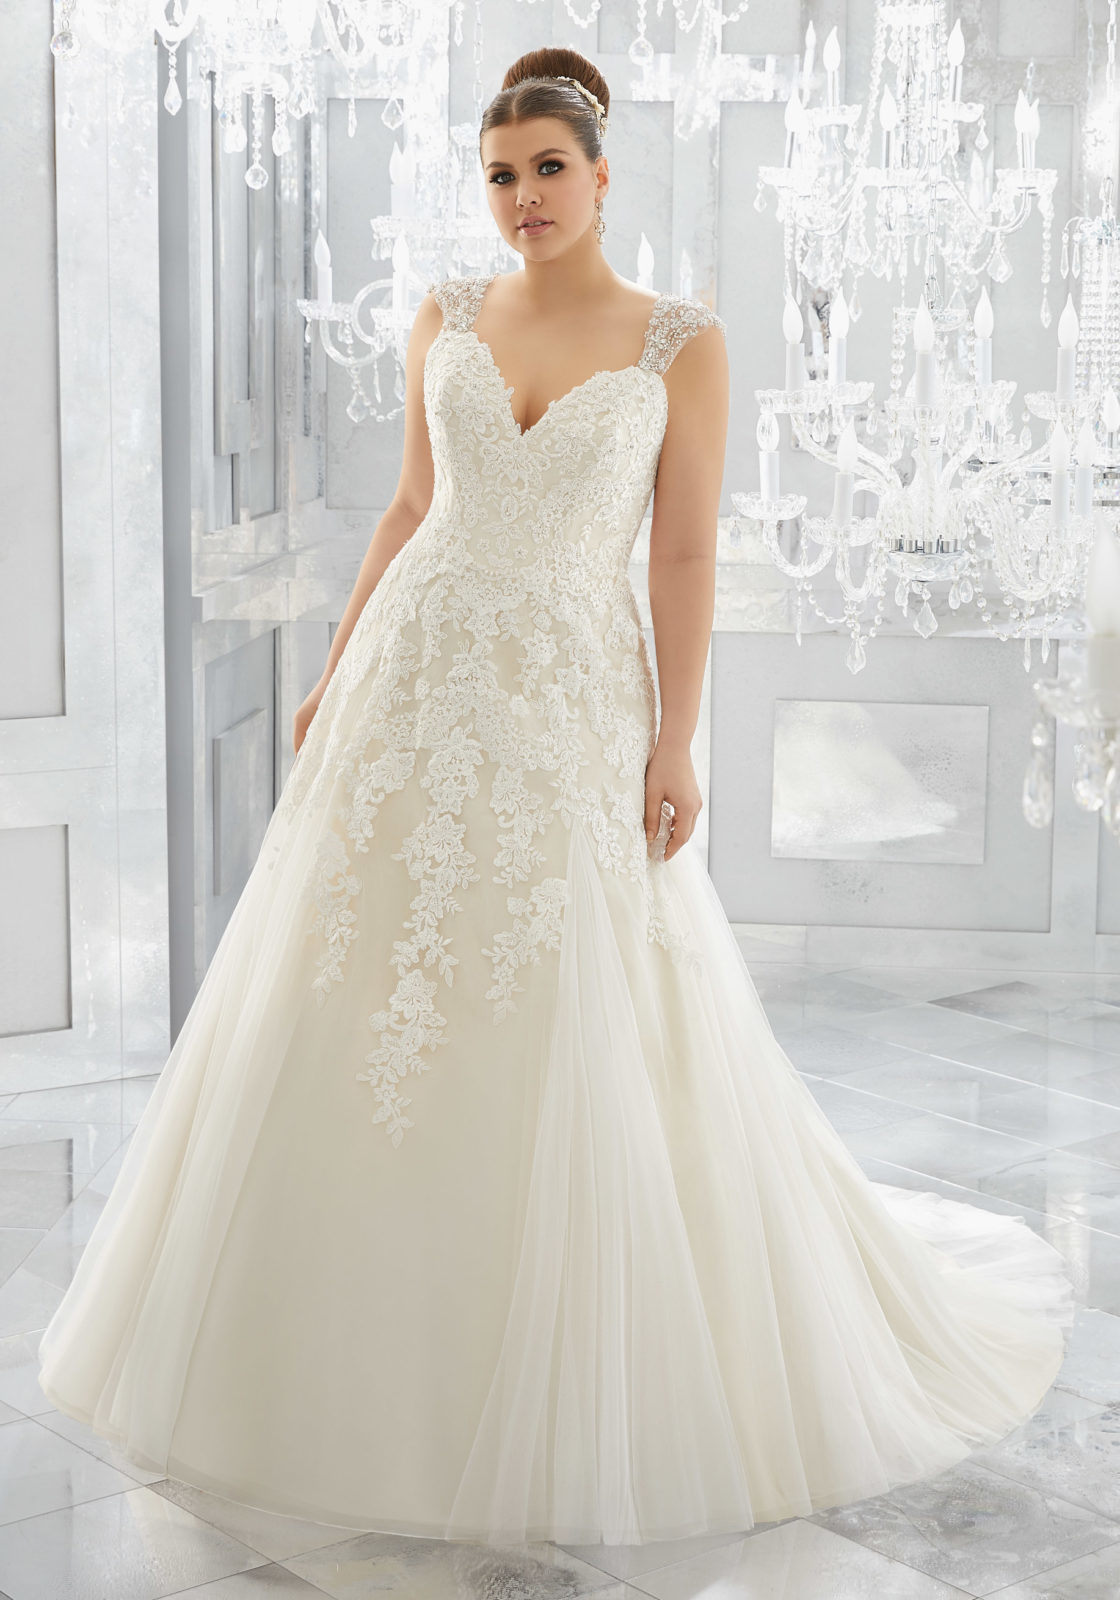 China Lace Bridal Gowns Plus Size Tulle A-Line Wedding ...